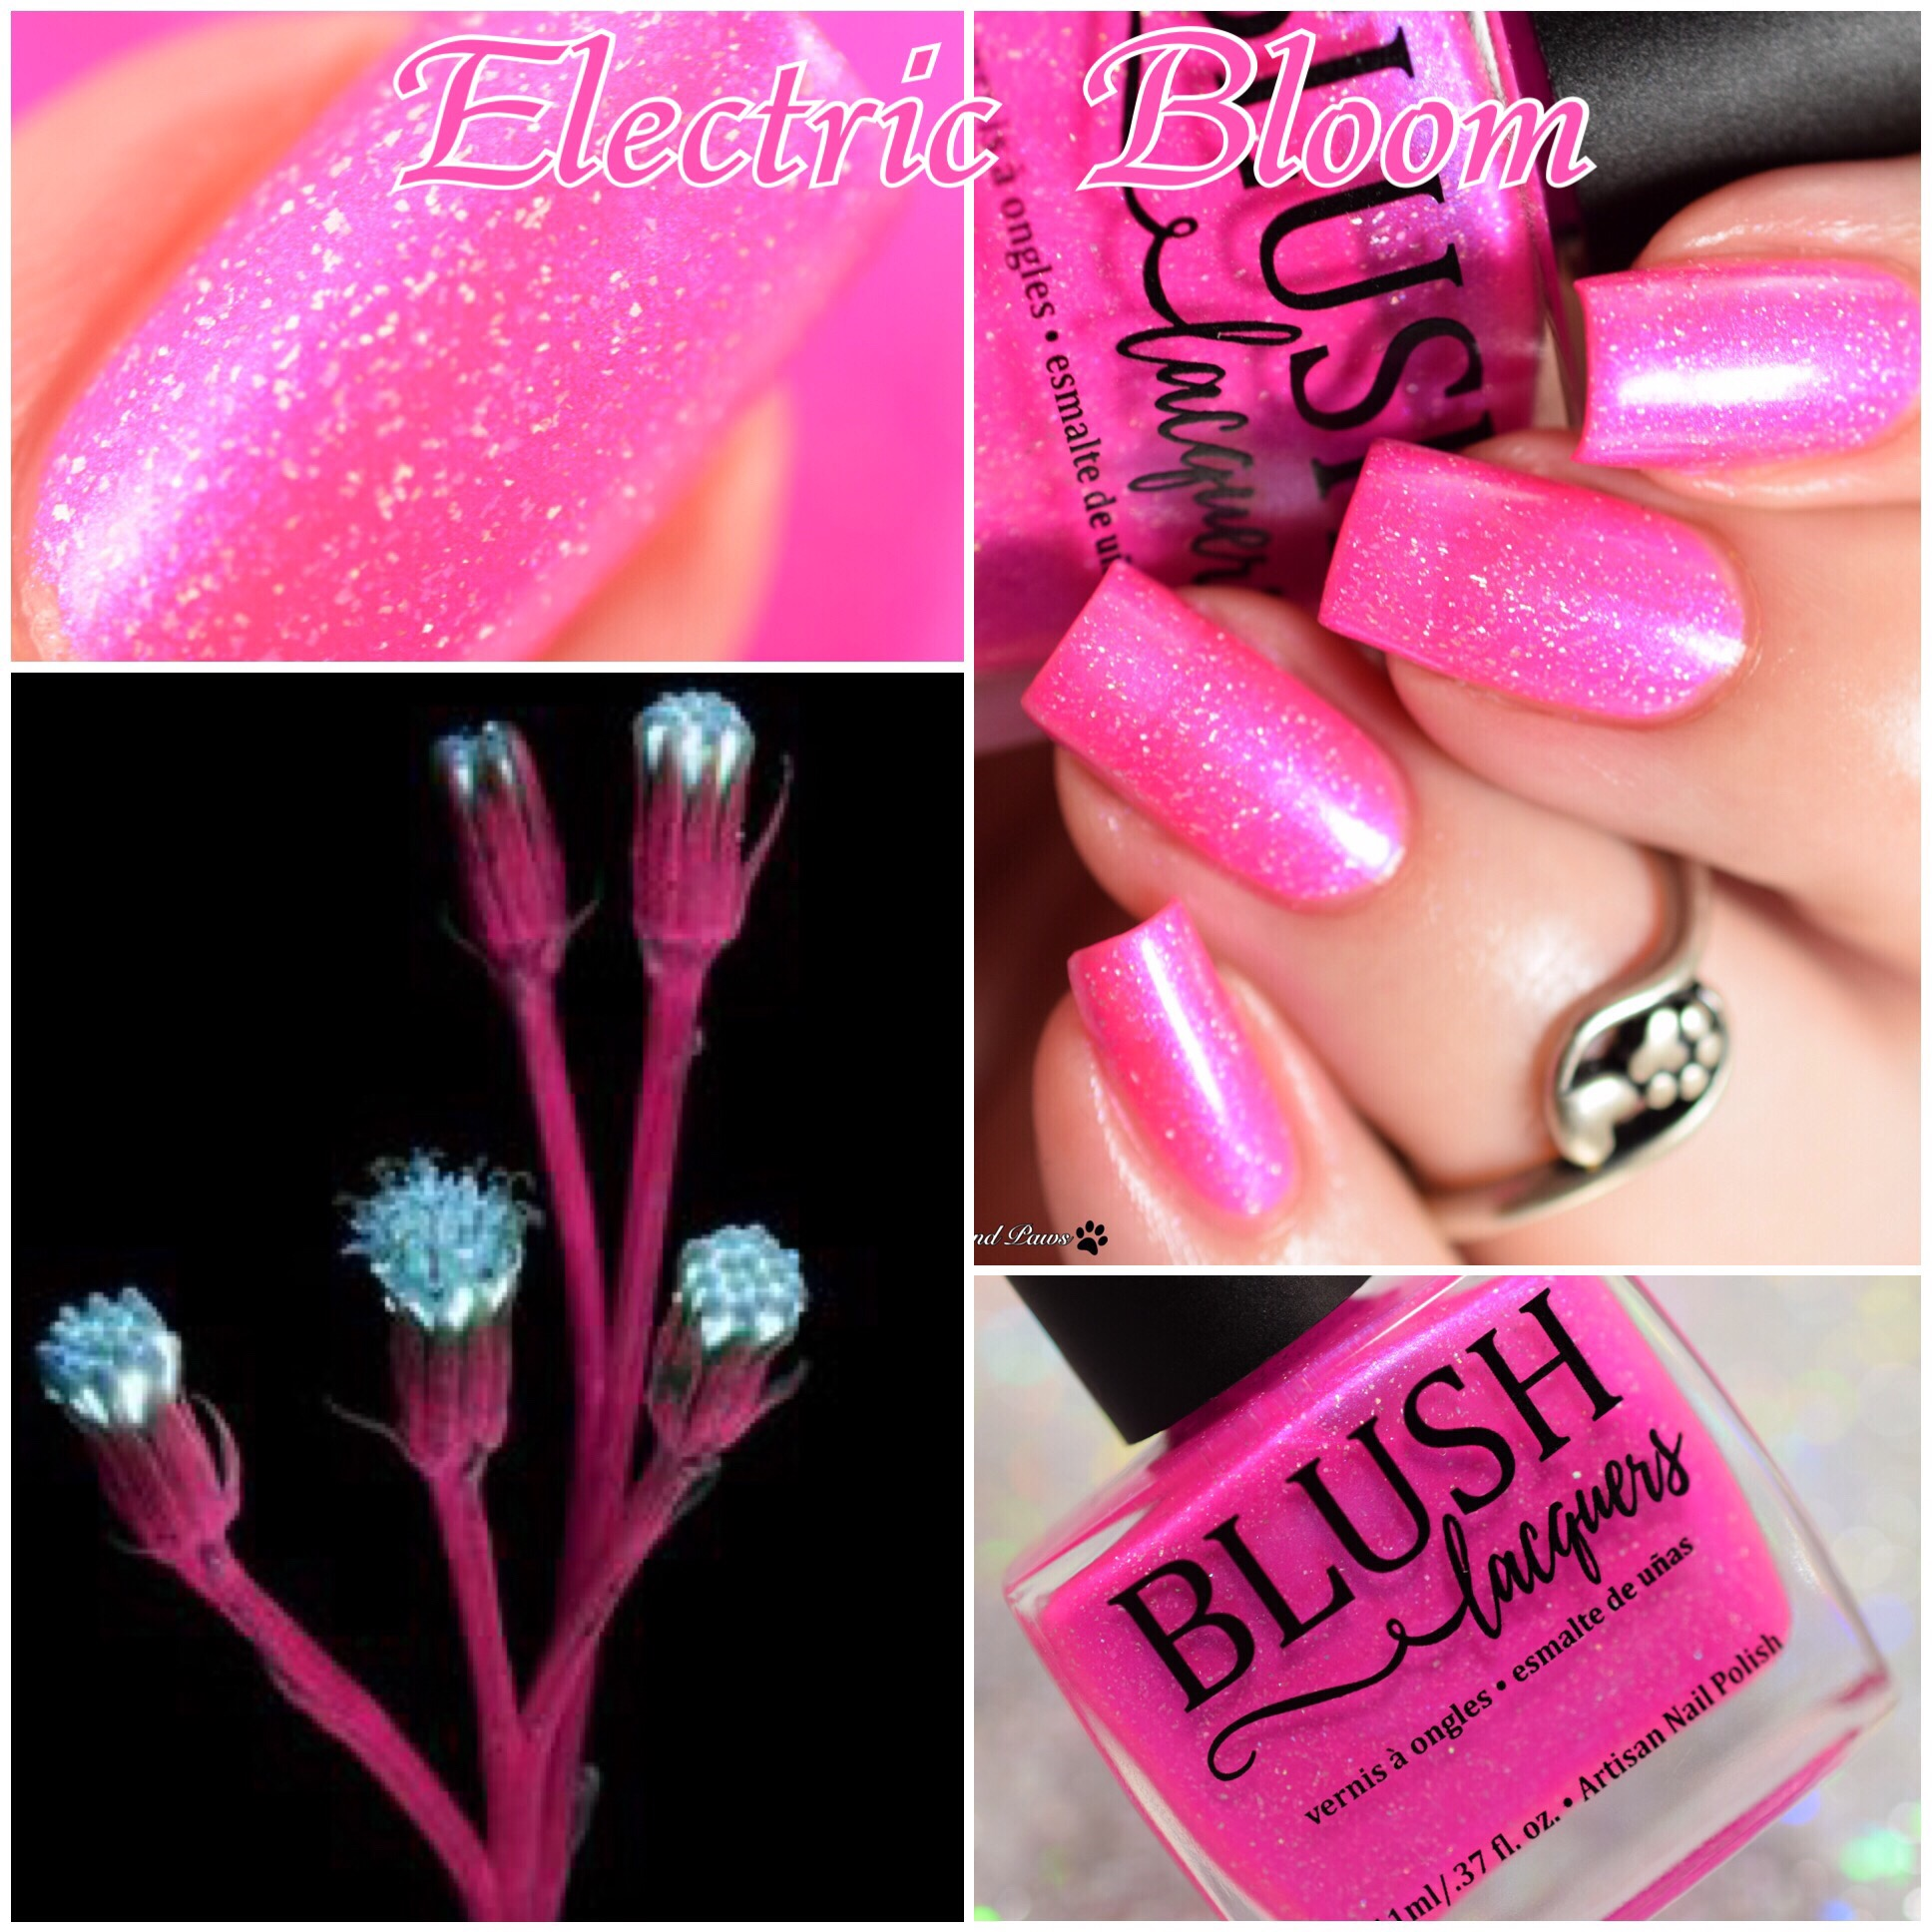 Blush Lacquers Electric Bloom